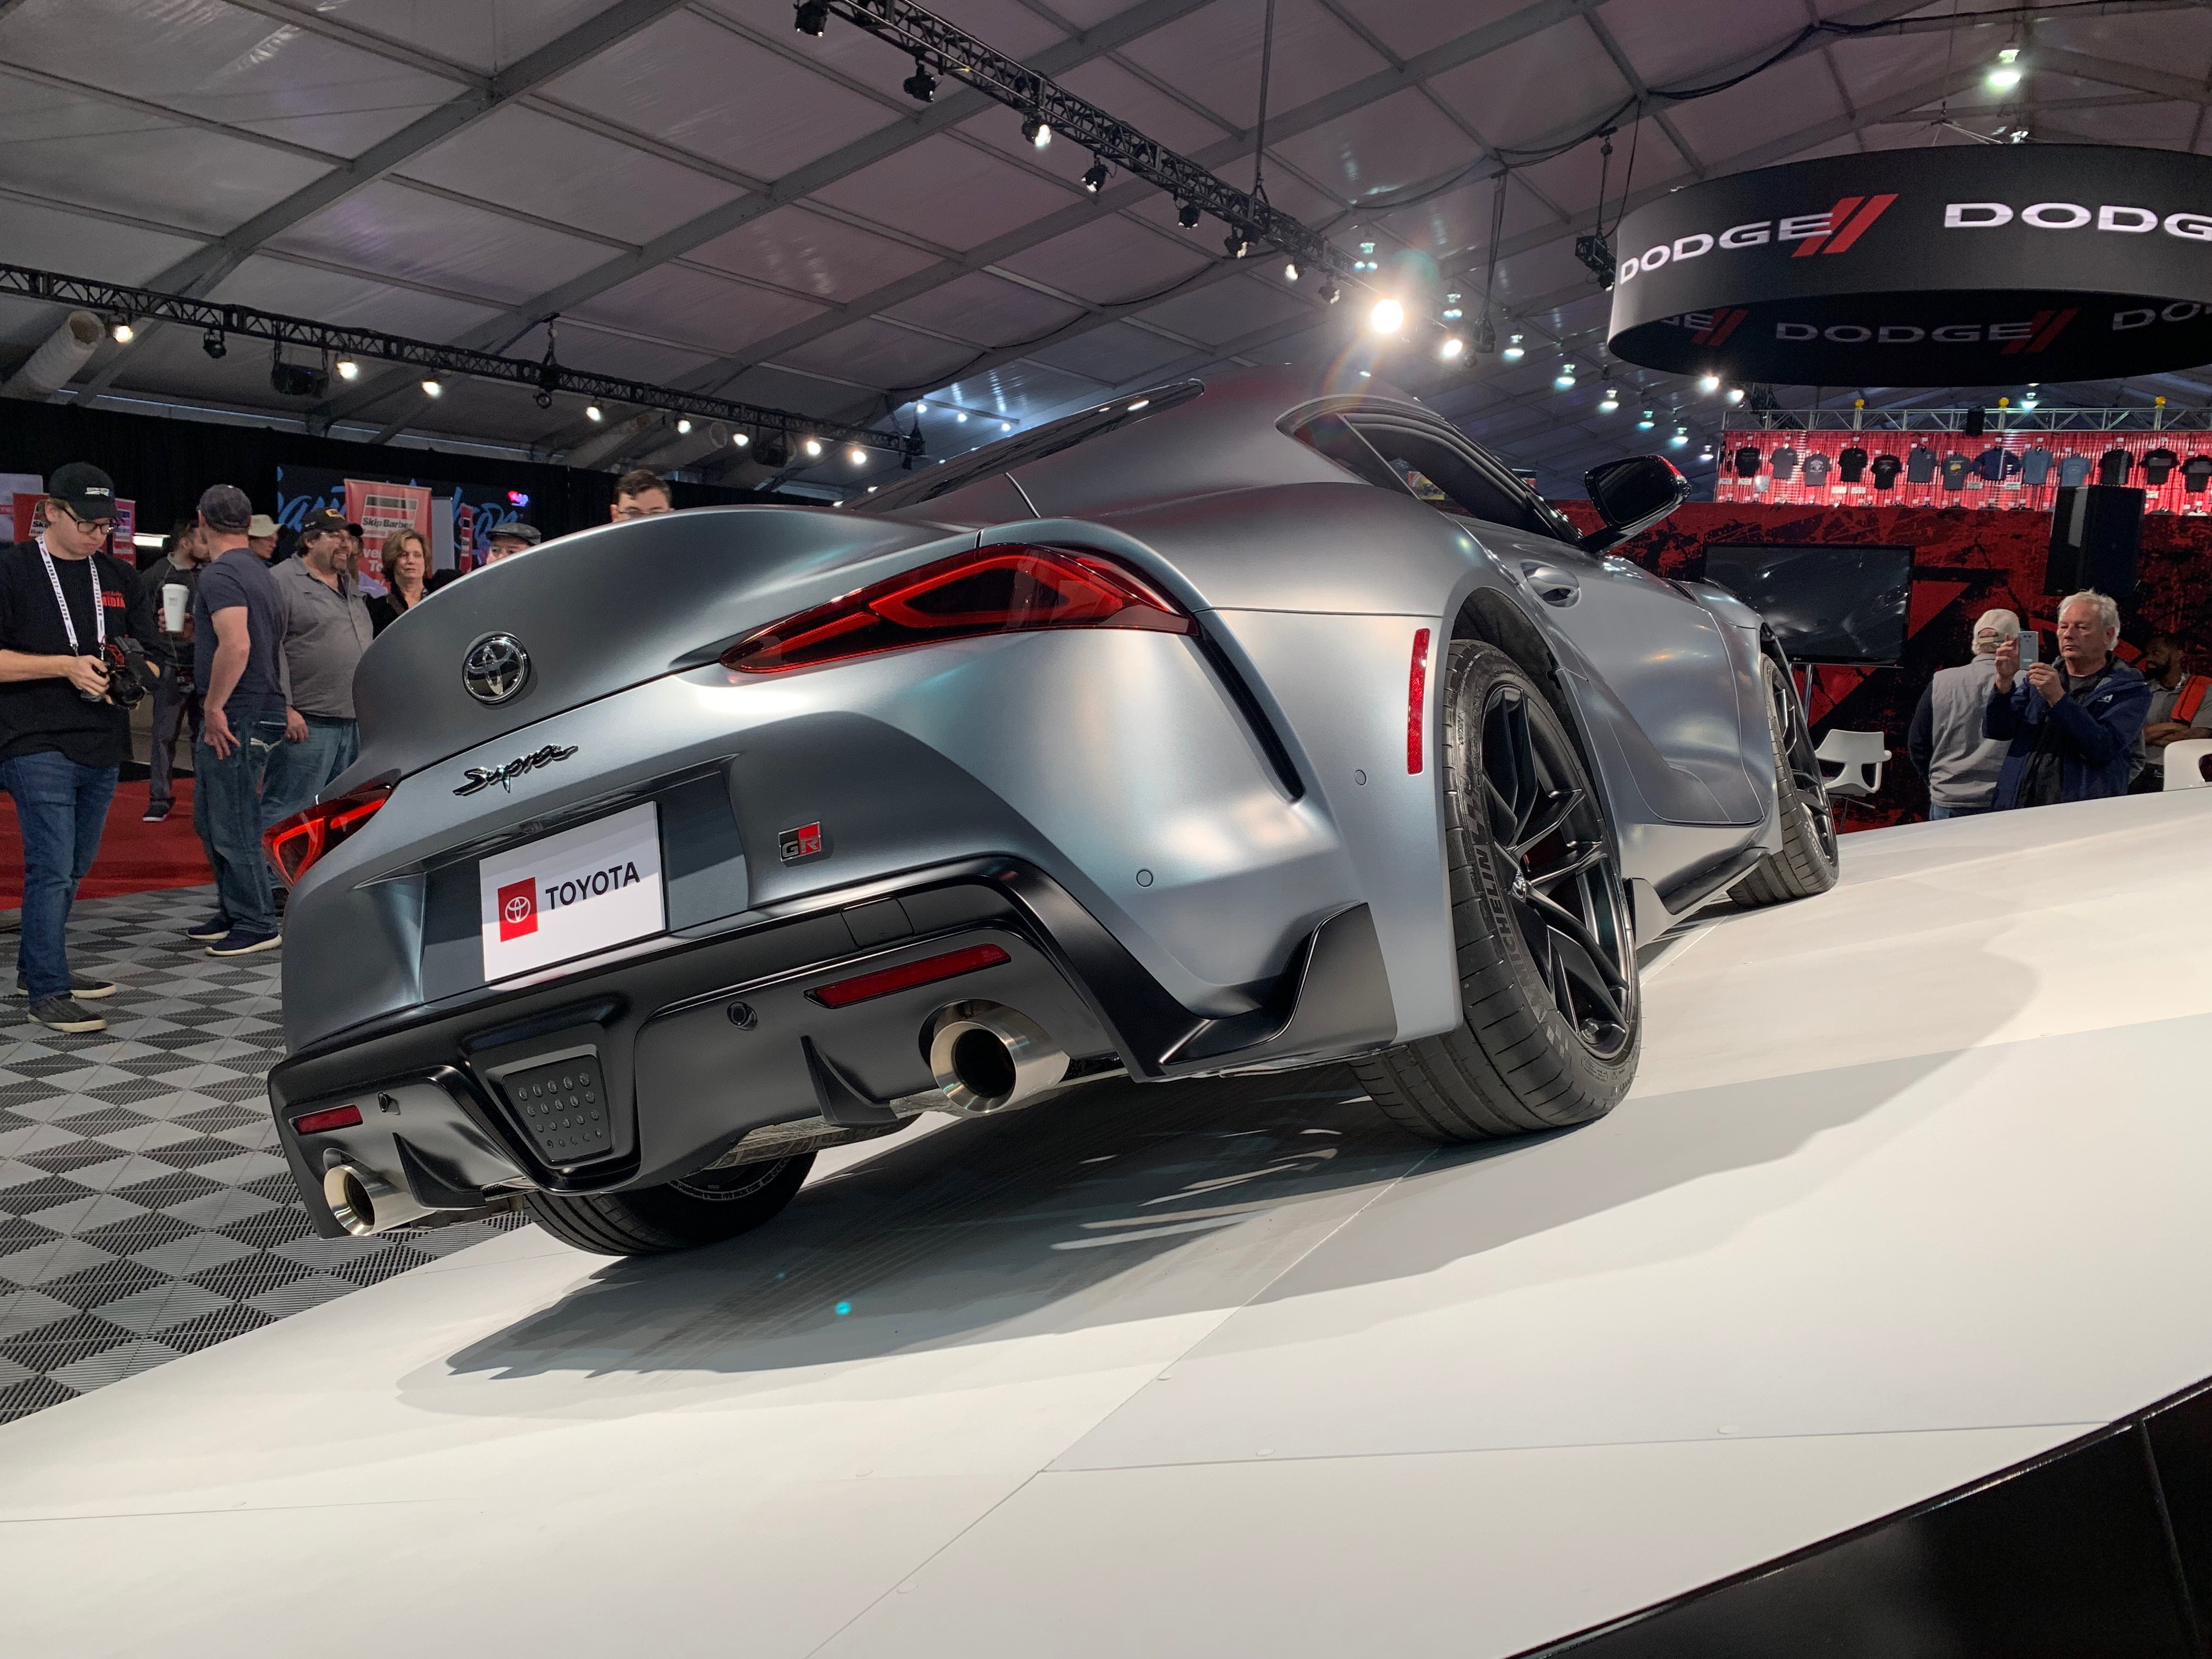 The back of the 2020 Toyota Supra appears to have taken some influence from previous generations. | Carter Nacke photo